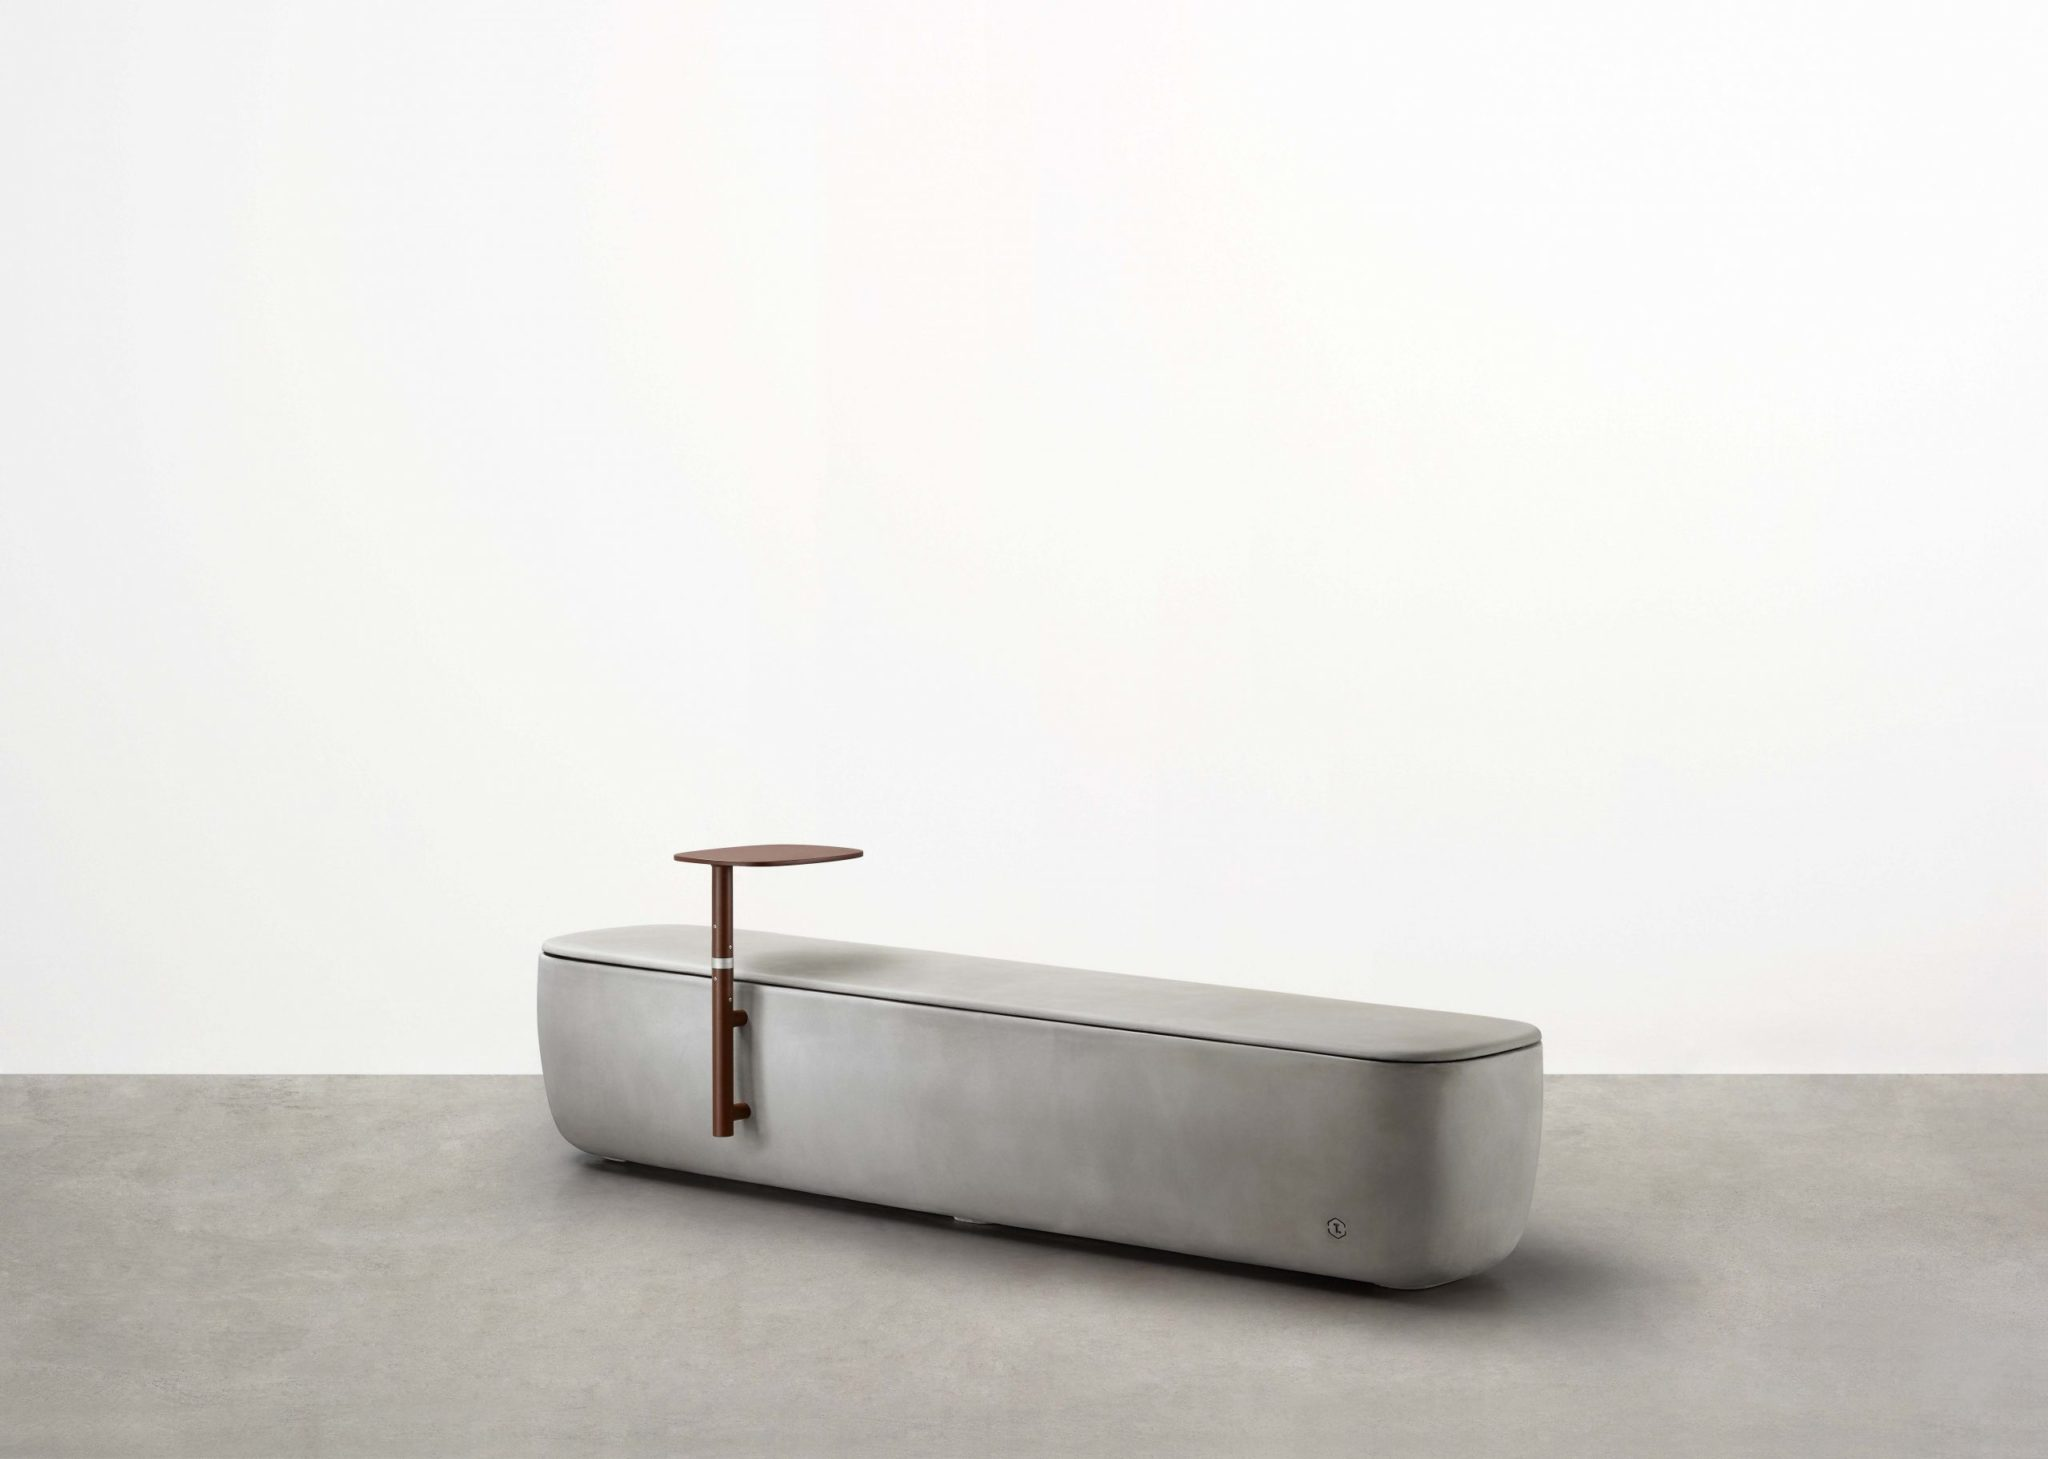 Designed by Adam Goodrum for Tait, the Scape Long Module is a long concrete bench seat that forms part of a fluid, triadic modular system.